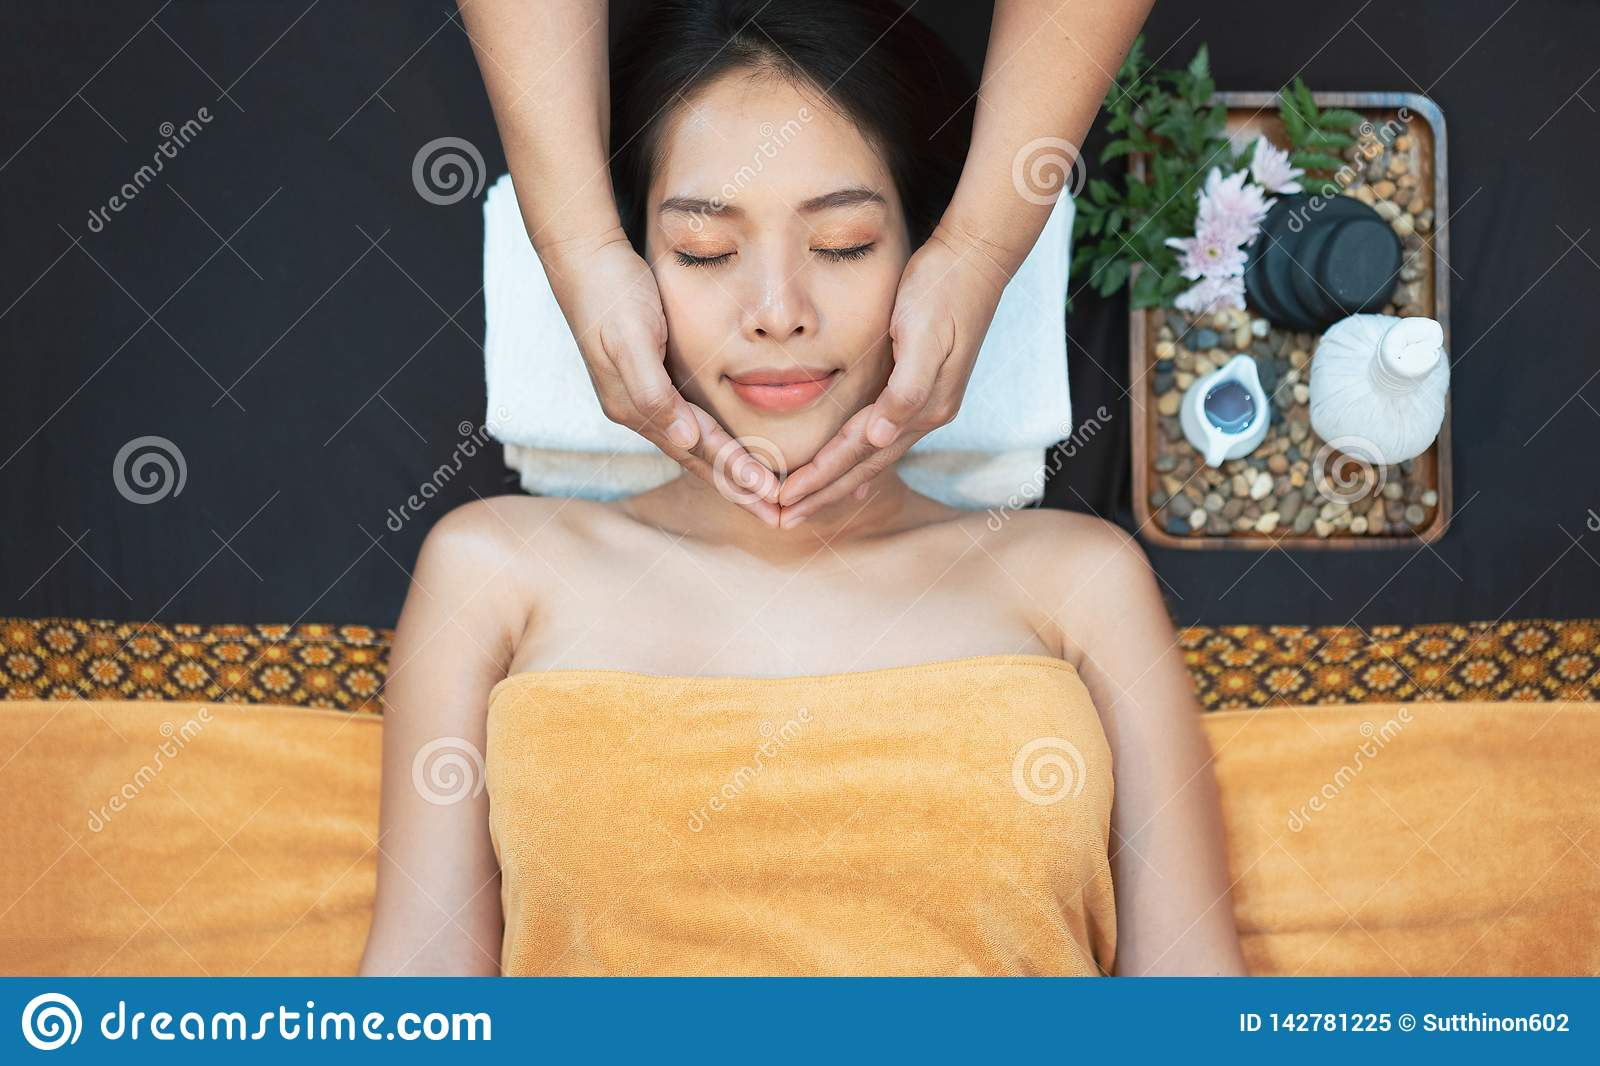 Face massage. Close-up of young woman getting spa massage treatment at beauty spa salon. Spa skin and body care. Facial beauty